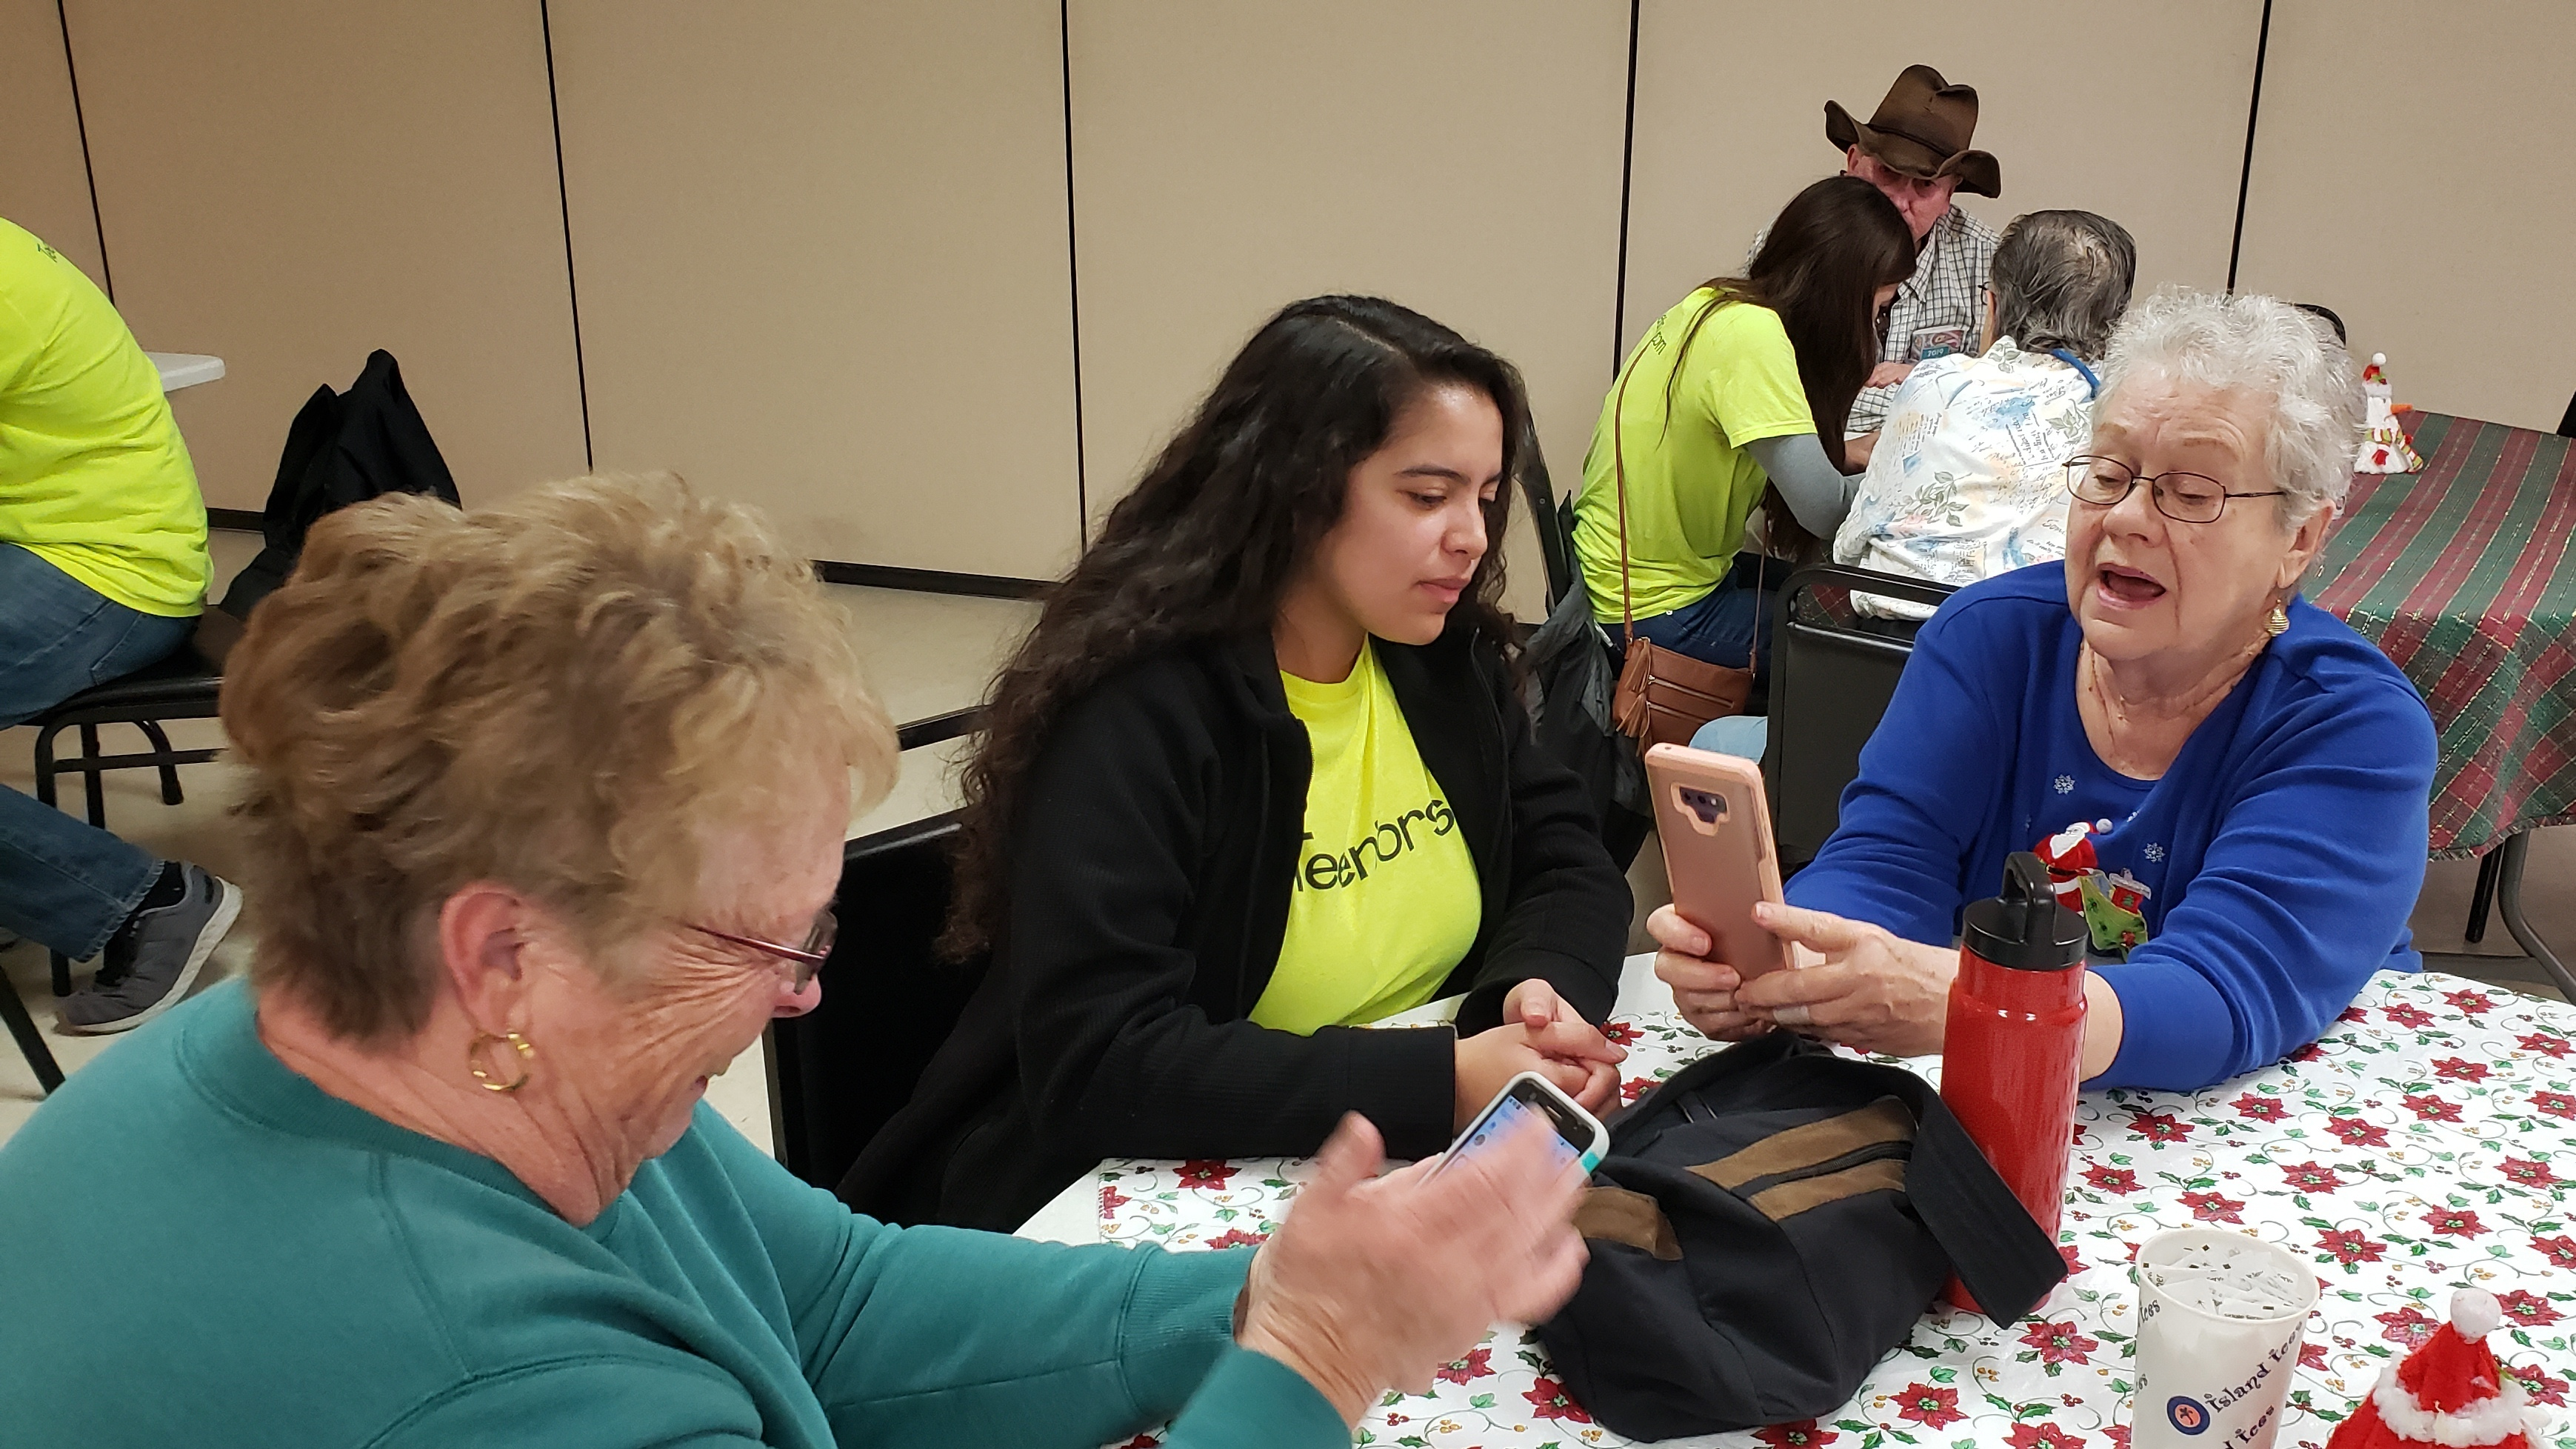 Youth Teaching Tech To Seniors Fosters Generational Connections